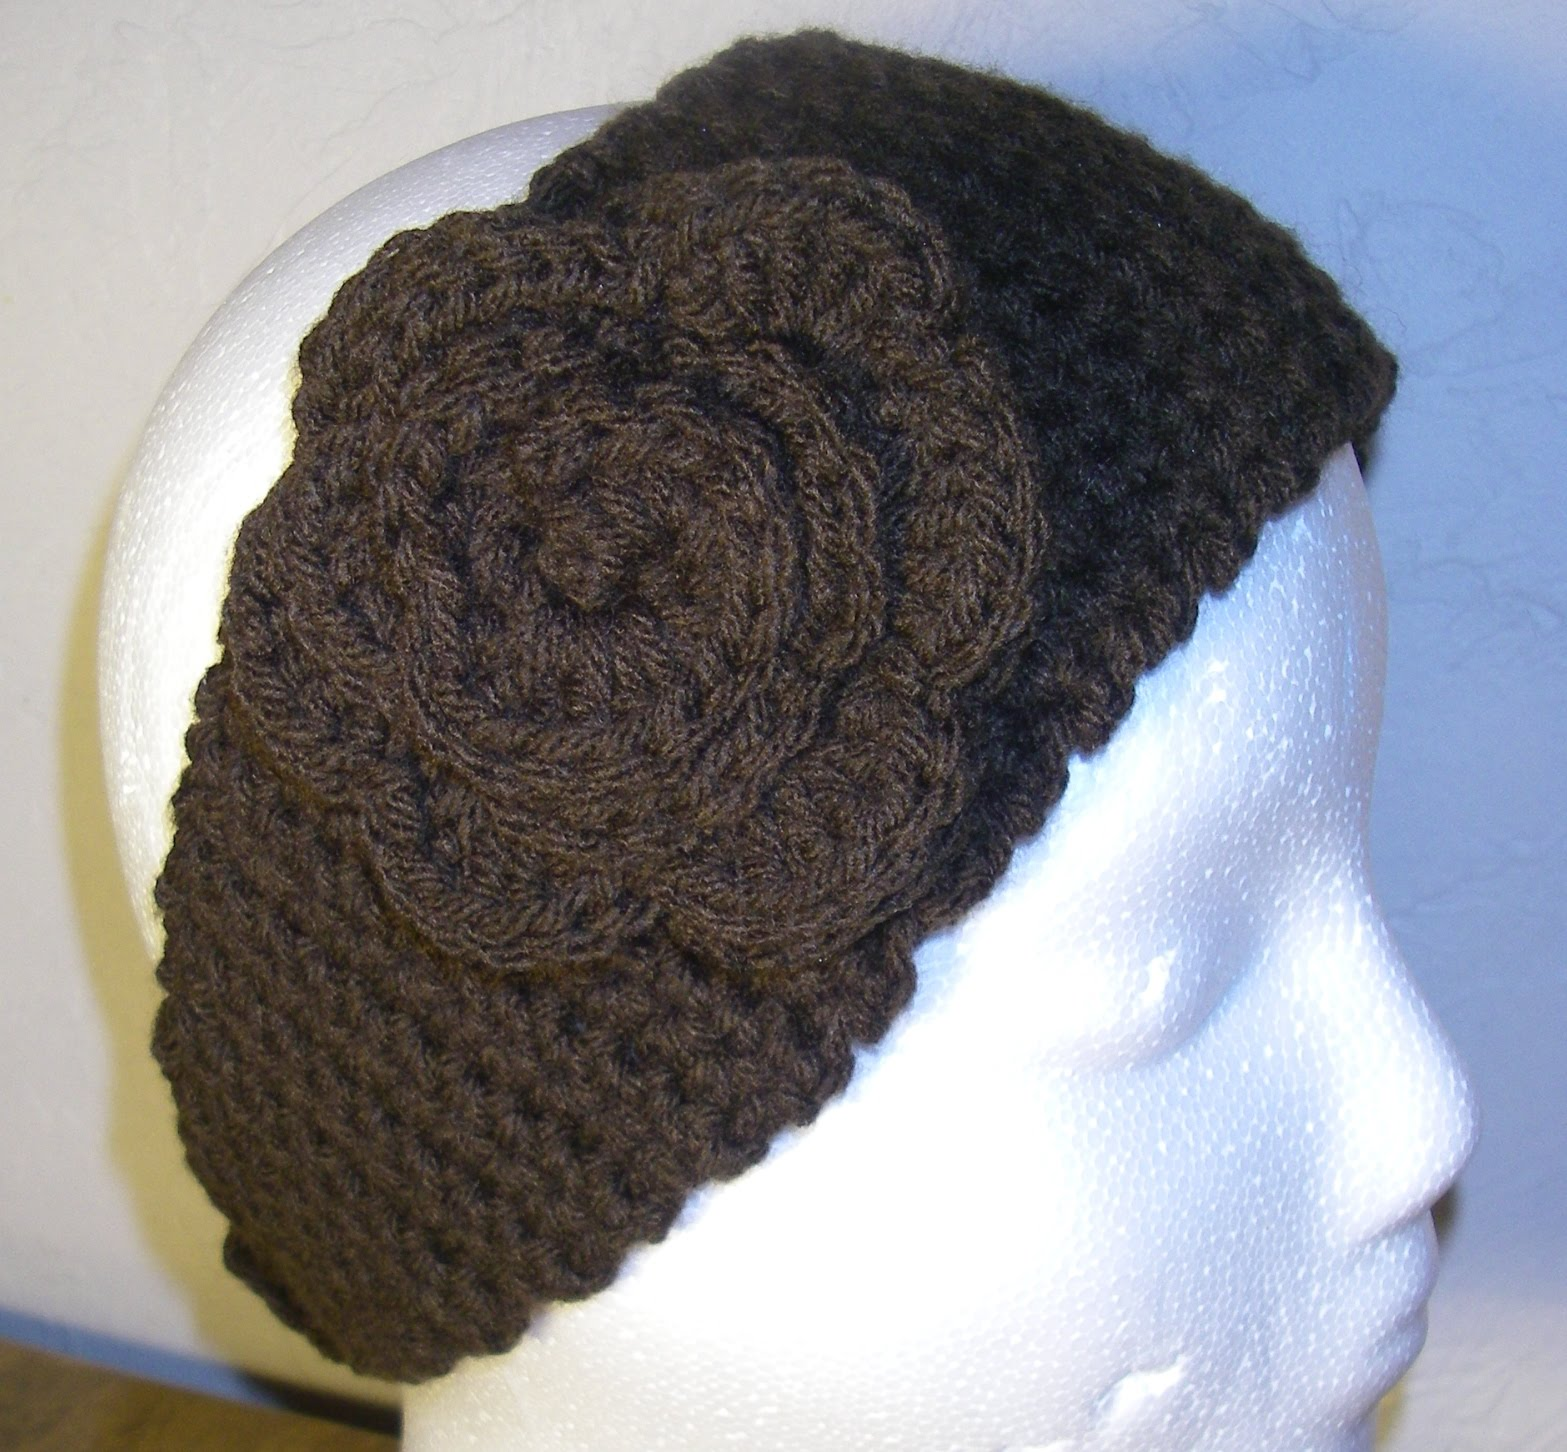 Celestials Creations: Crocheted Headband